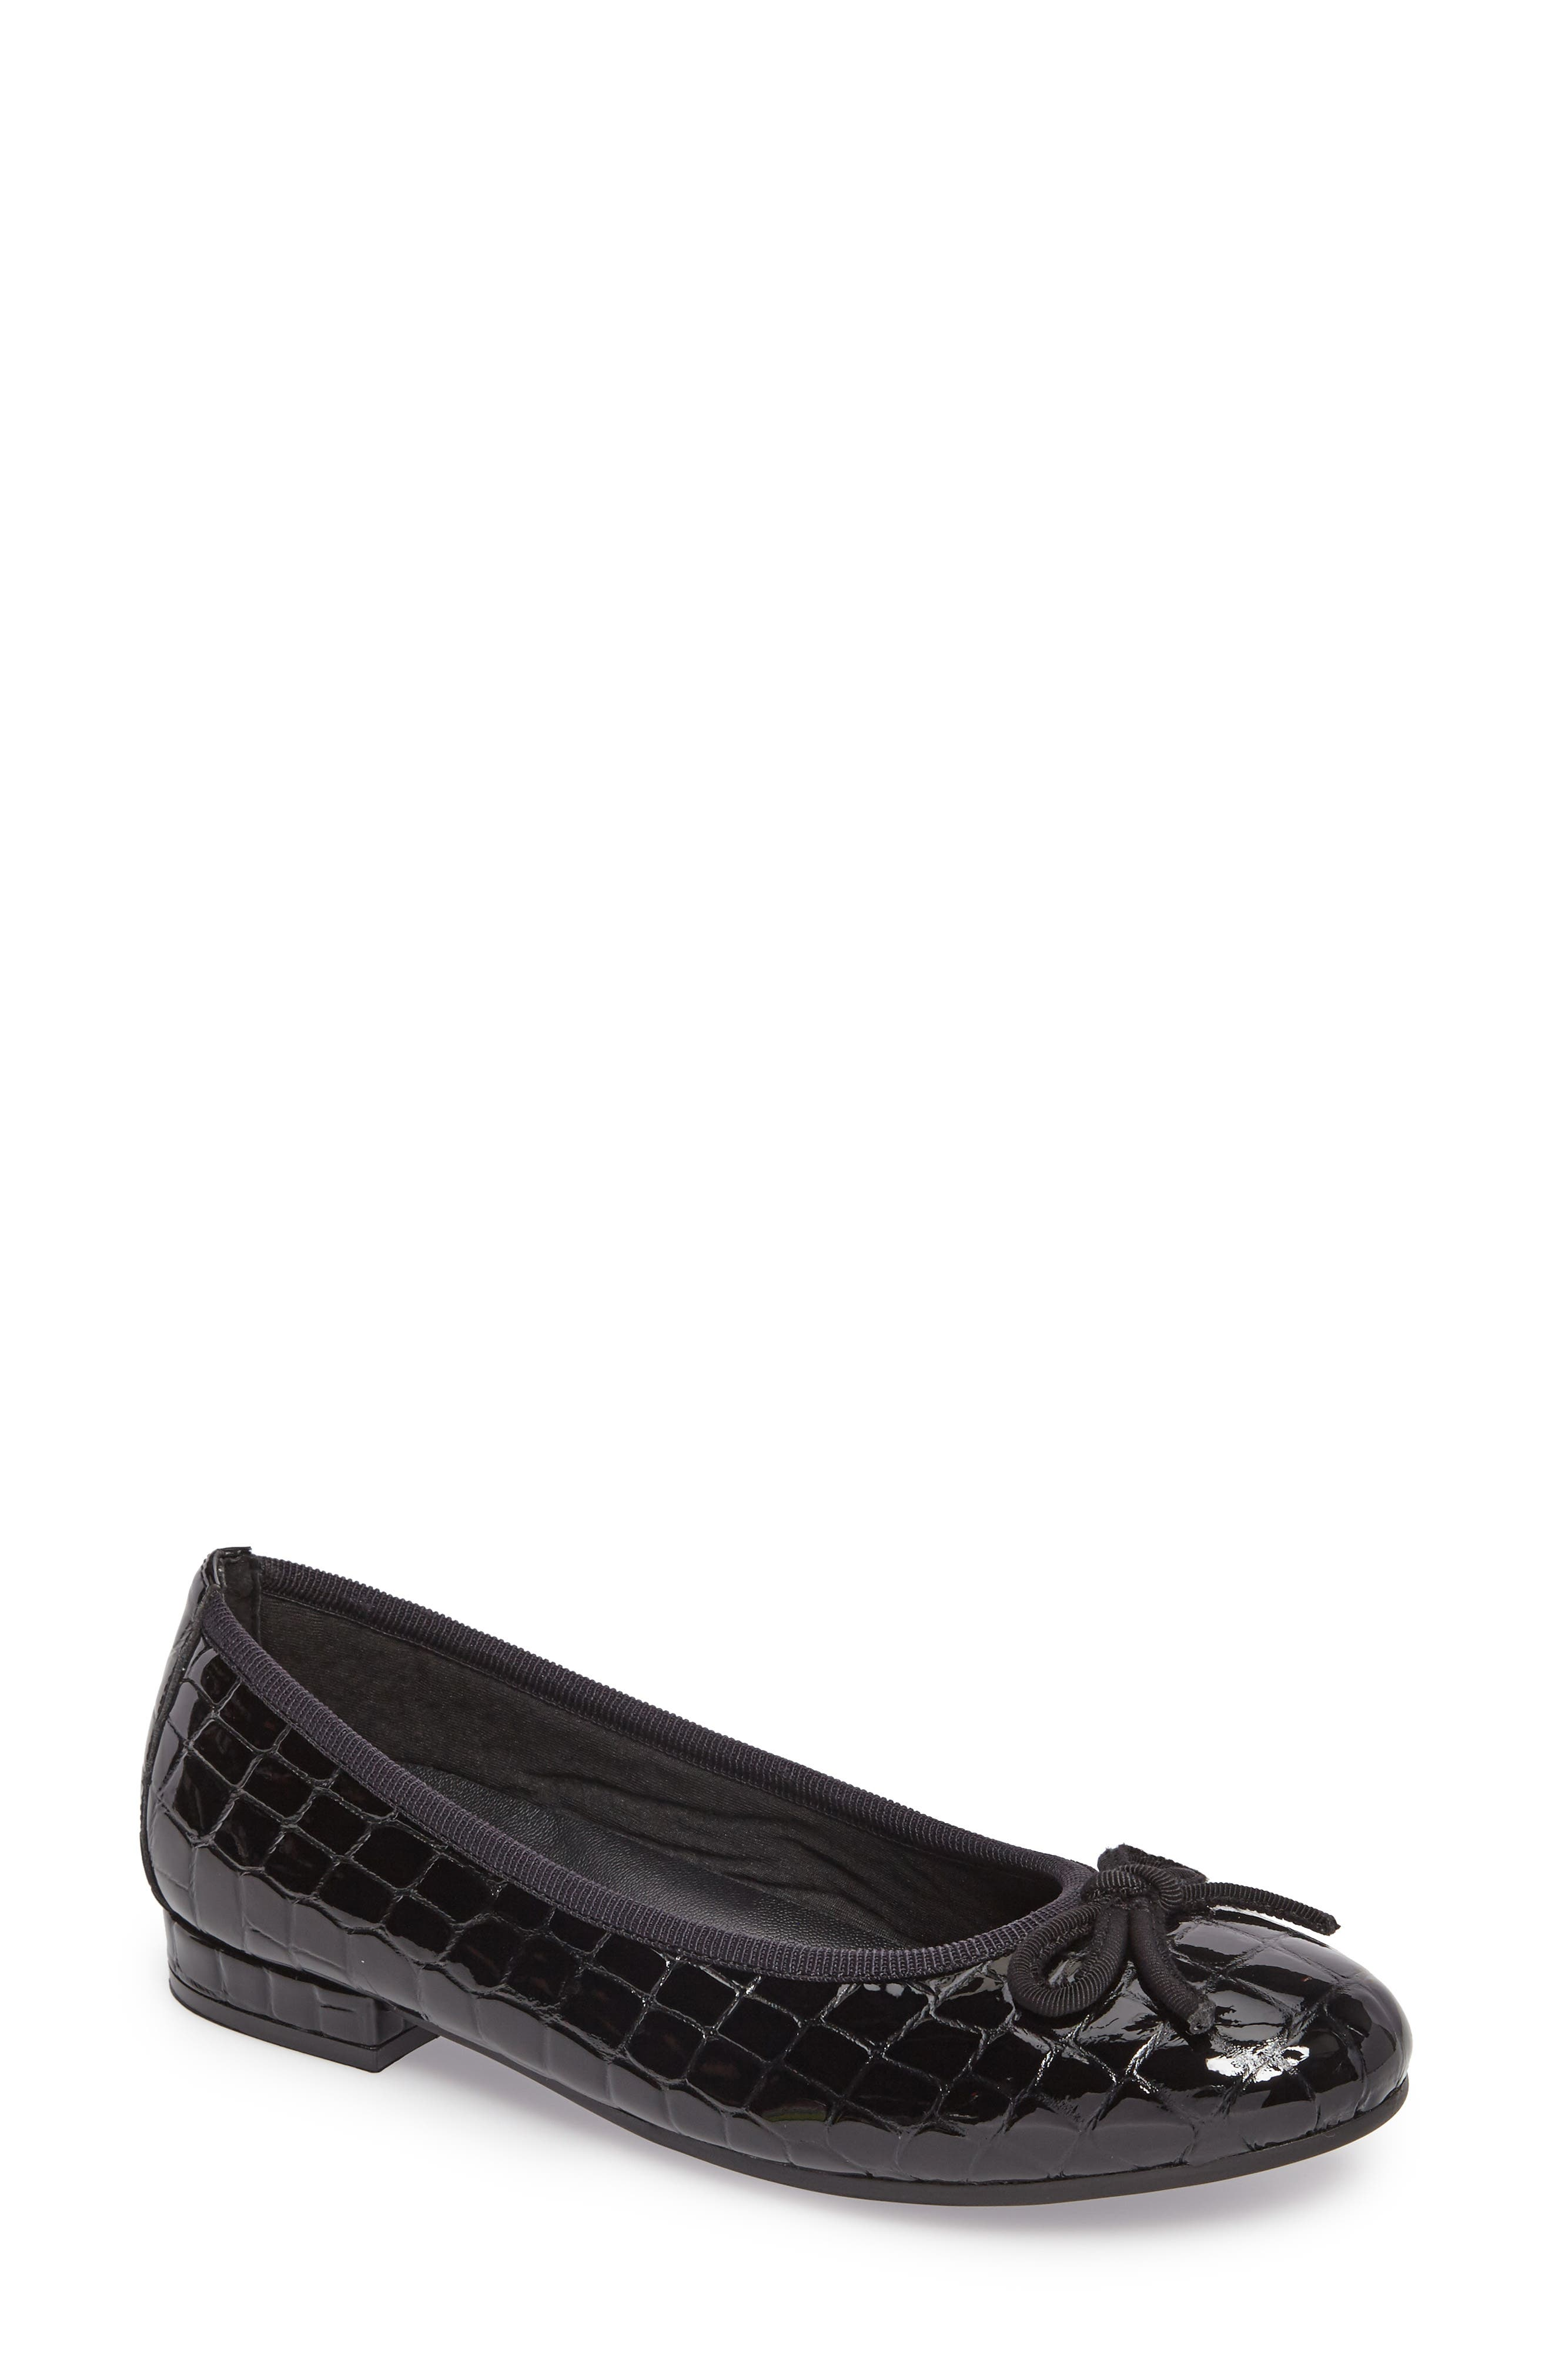 Glow Flat,                         Main,                         color, BLACK PATENT LEATHER